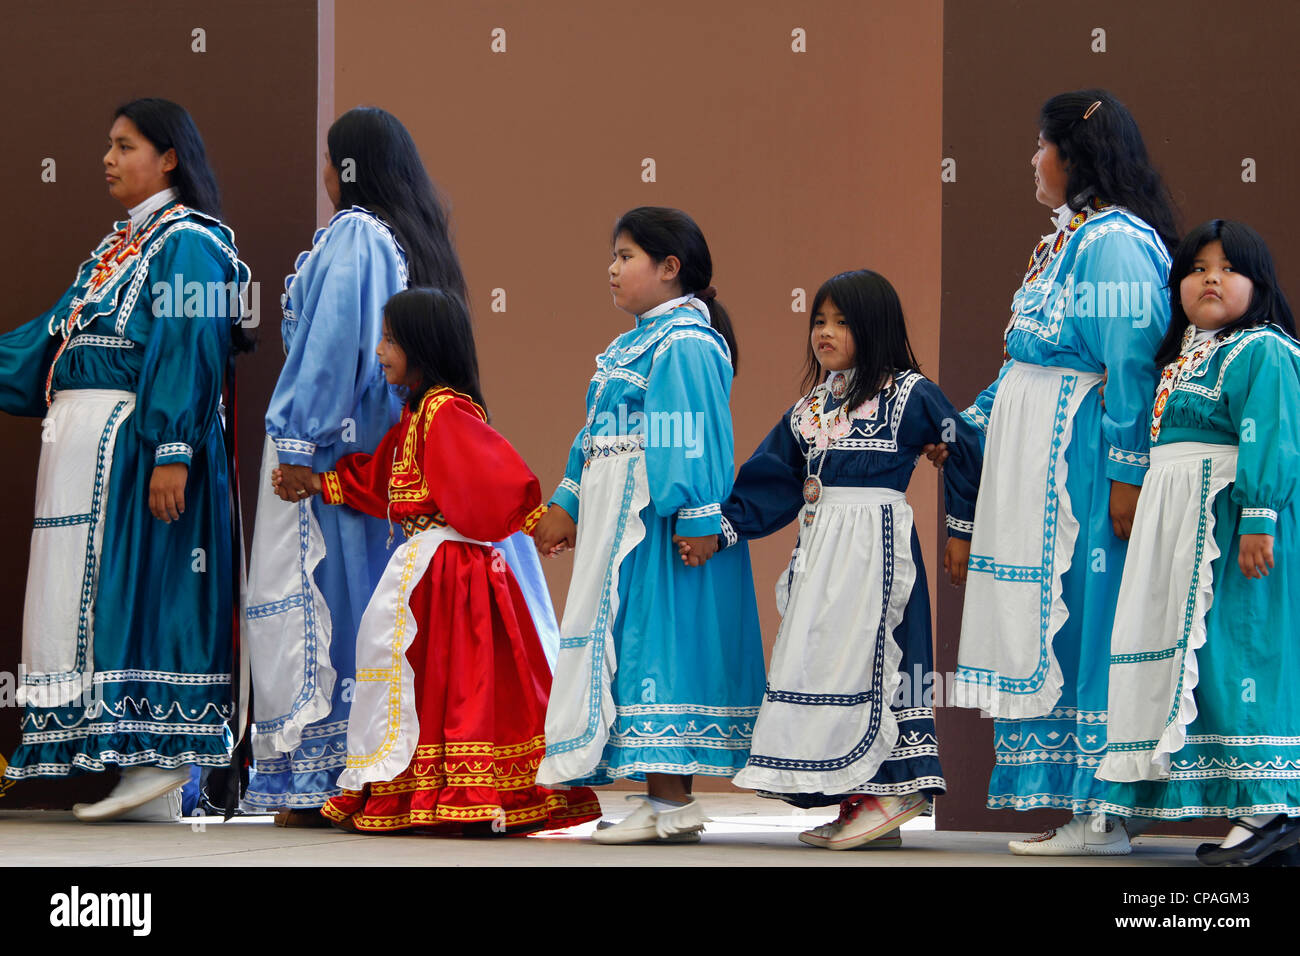 USA, North Carolina, Cherokee. Choctaw Indians women and girls performing a social dance during Southeast Tribes - Stock Image